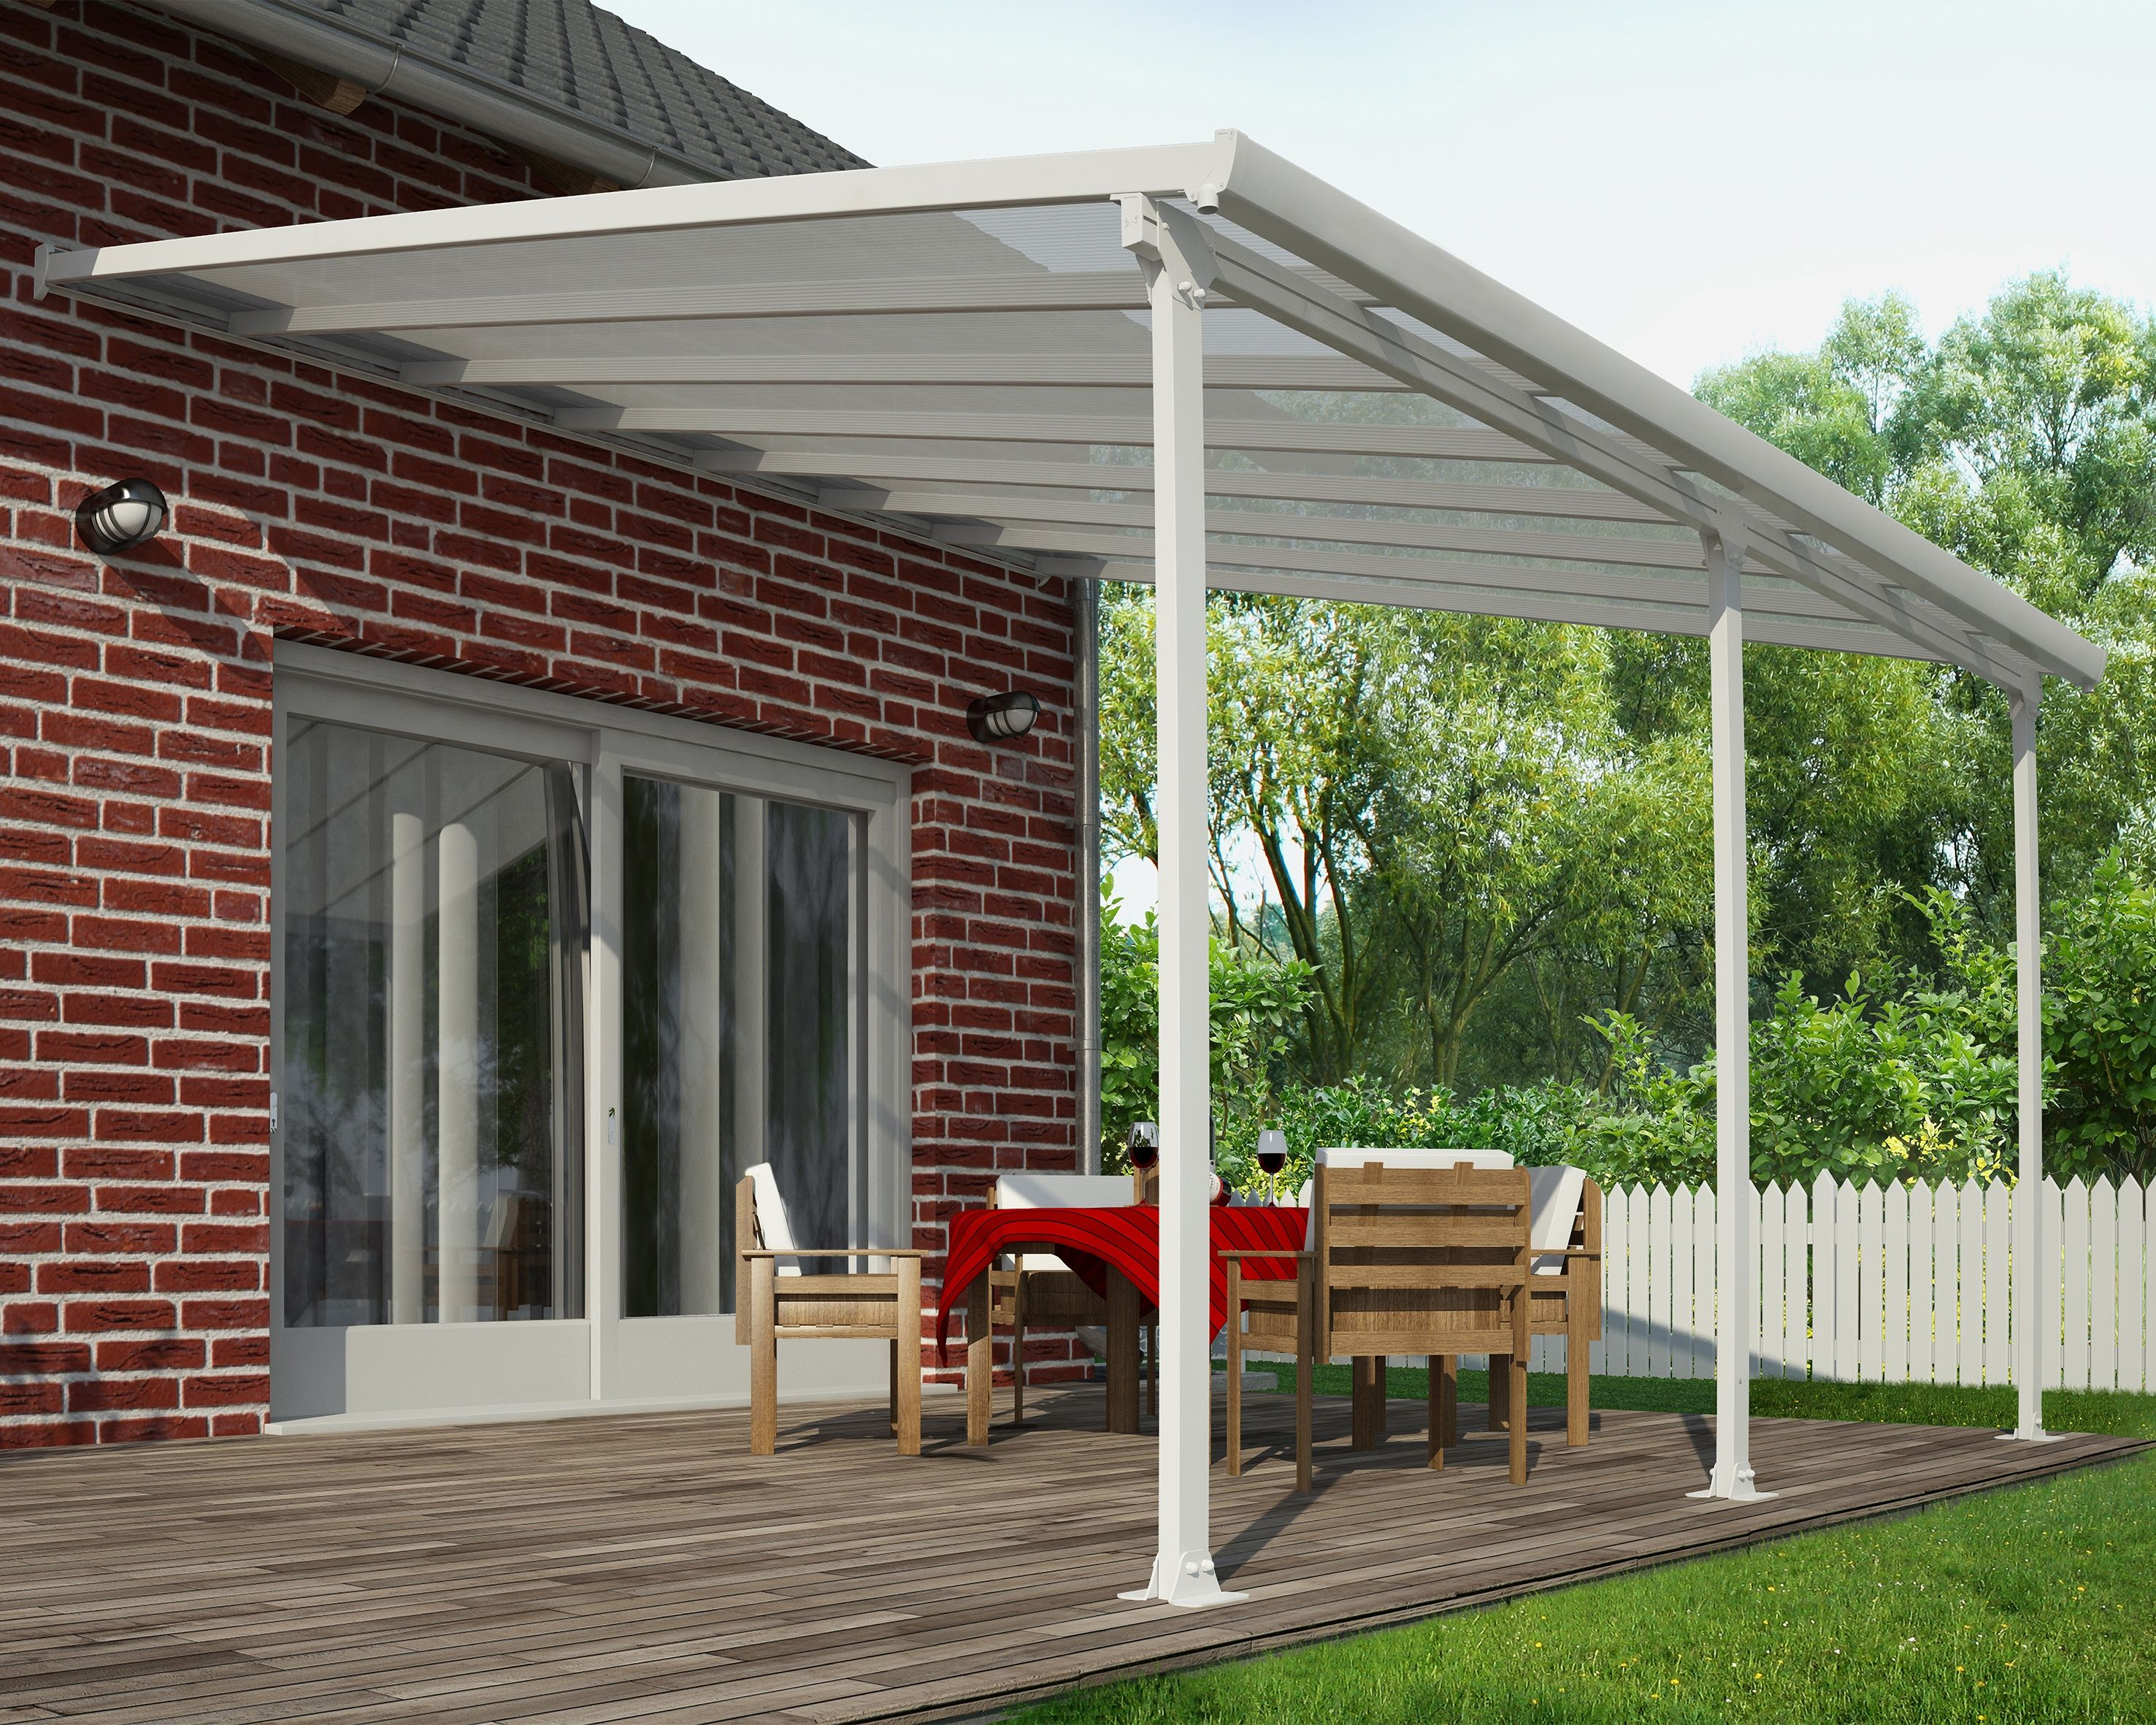 and pertaining to metal designs ideas garden x screened contemporary sizing patio over roof porch for